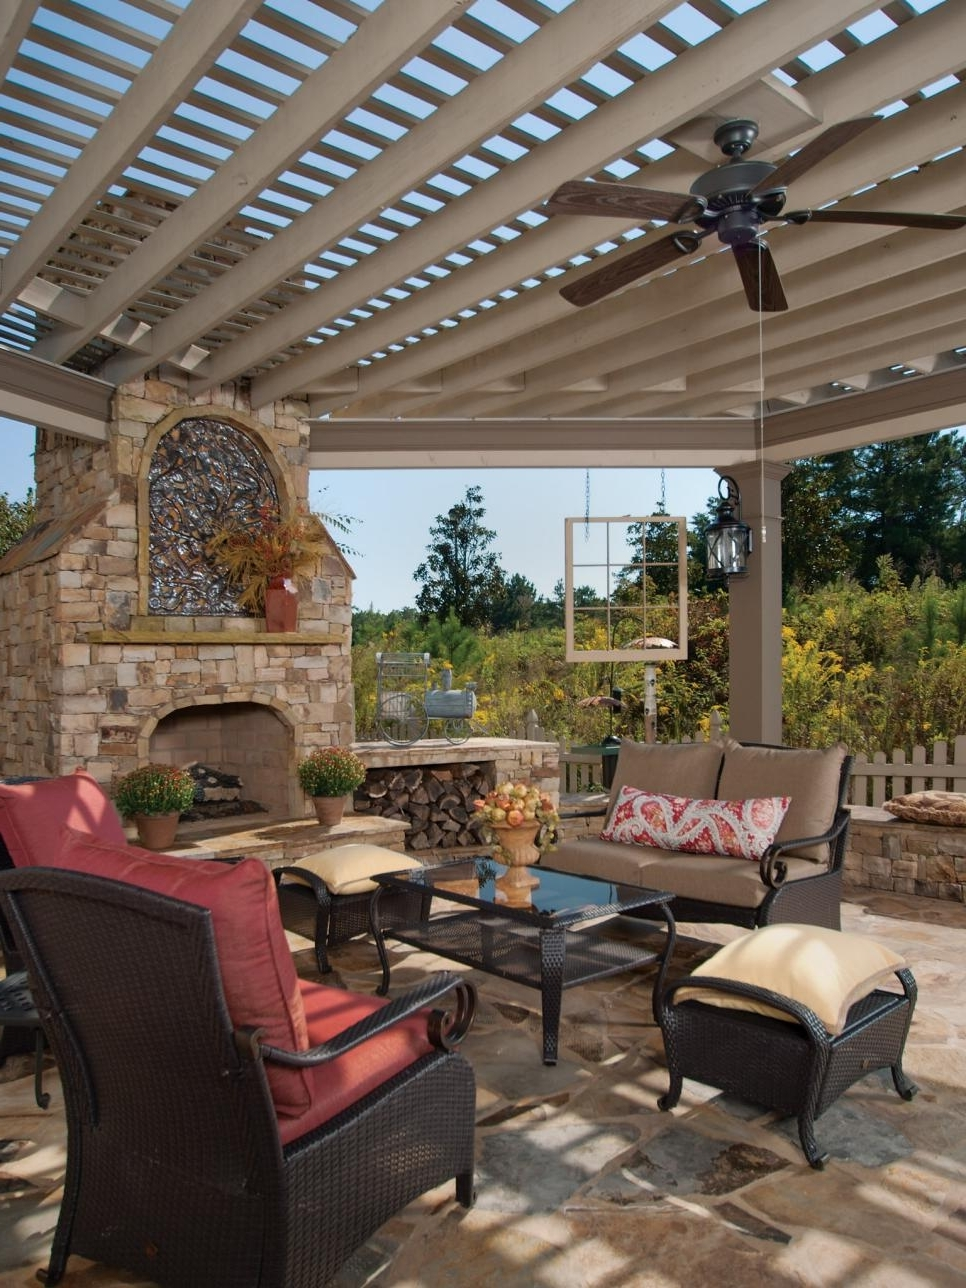 Widely Used Wicker Outdoor Ceiling Fans Intended For Ideas: Enchanting Patio Design With White Pergola Design And (View 16 of 20)